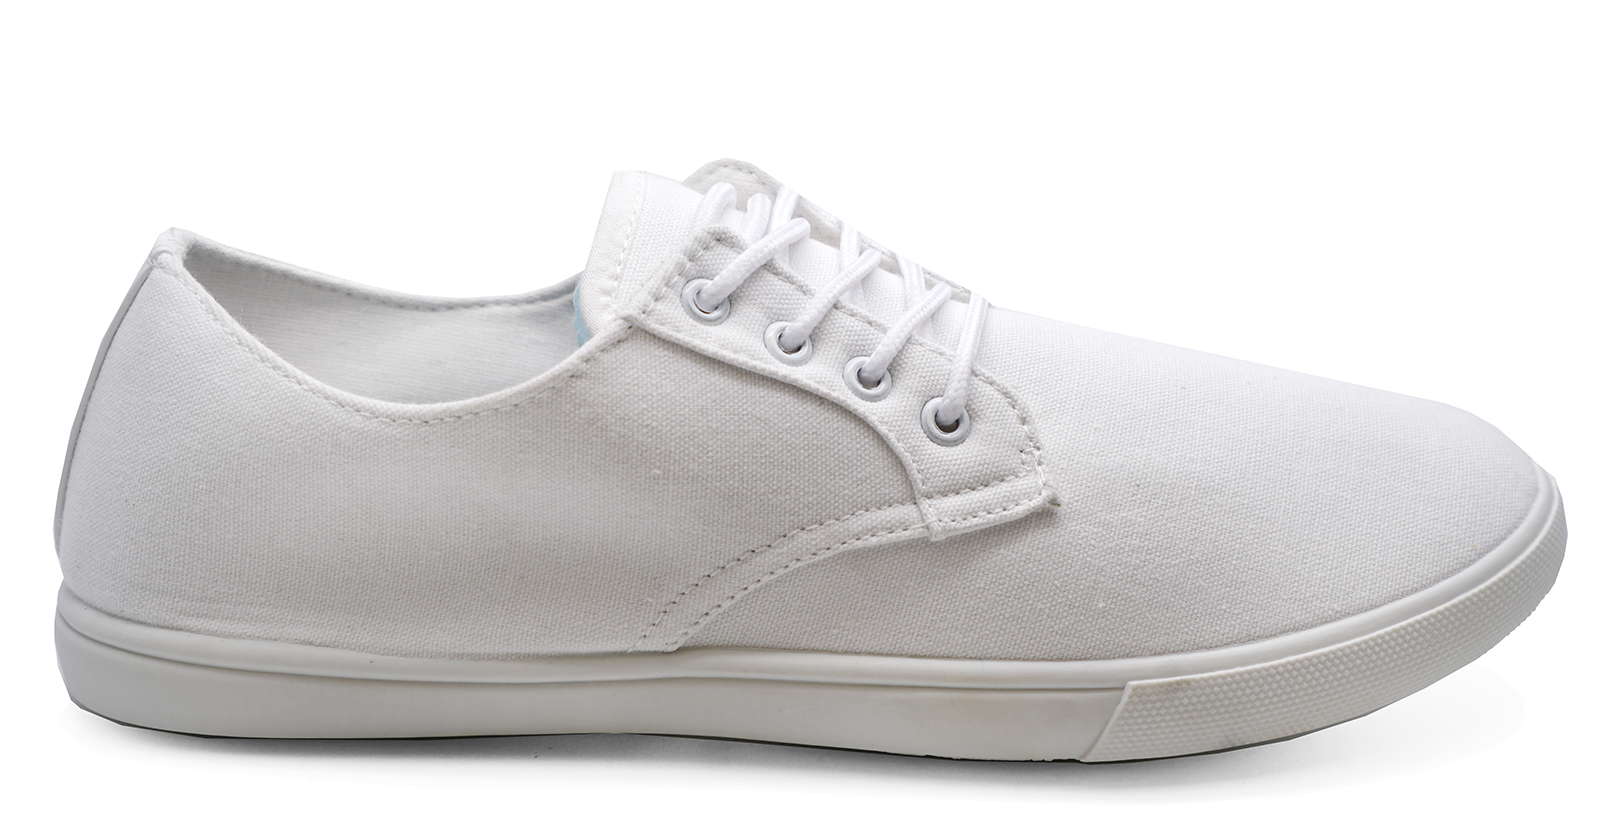 MENS-LACE-UP-WHITE-CANVAS-FLAT-TRAINER-PLIMSOLL-PUMPS-CASUAL-SHOES-SIZES-6-12 thumbnail 9